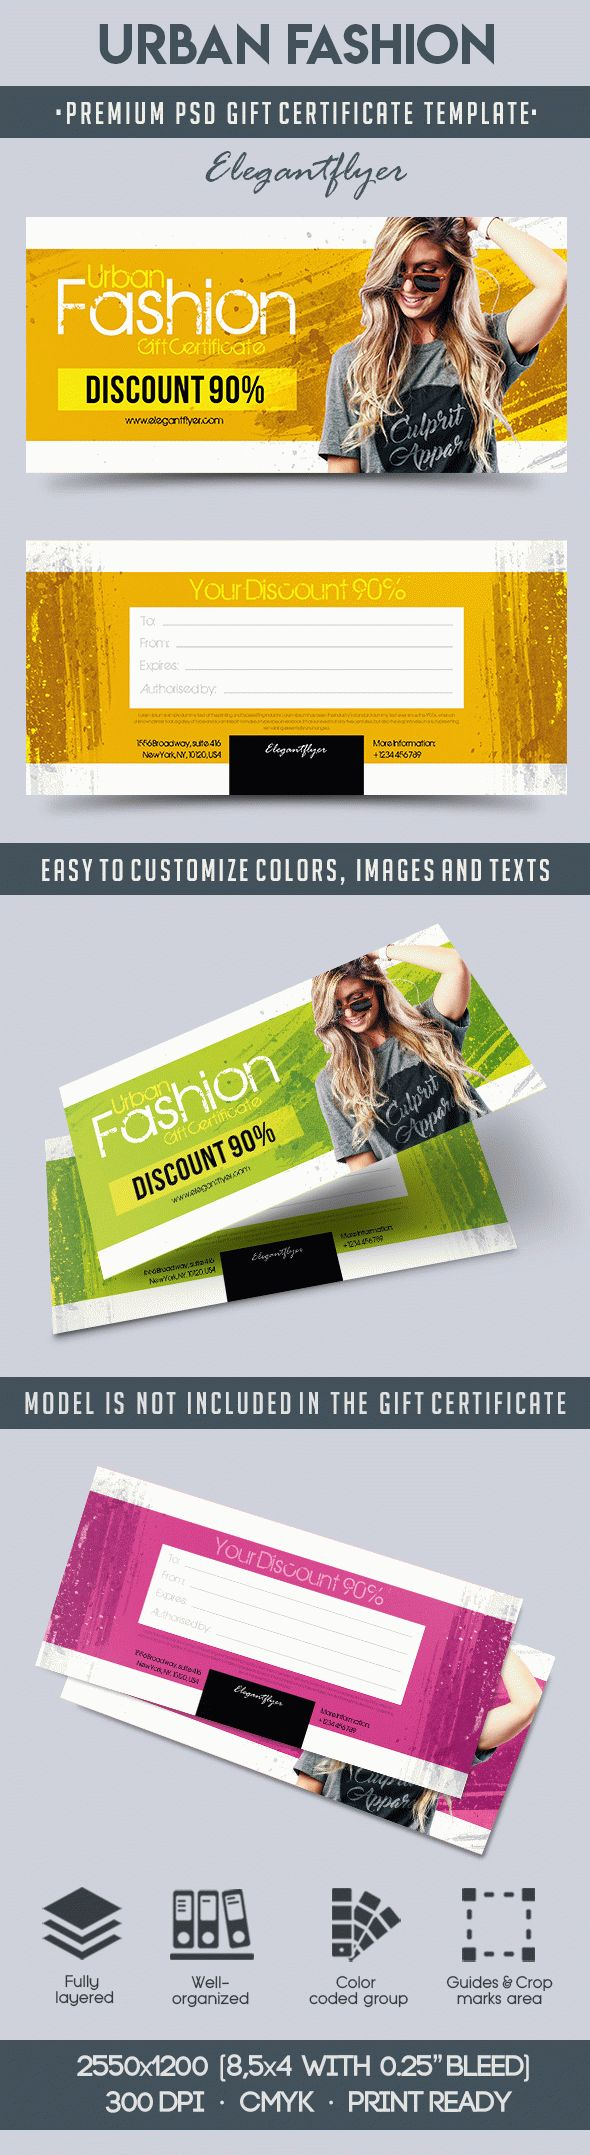 Gift Certificate for Urban Fashion